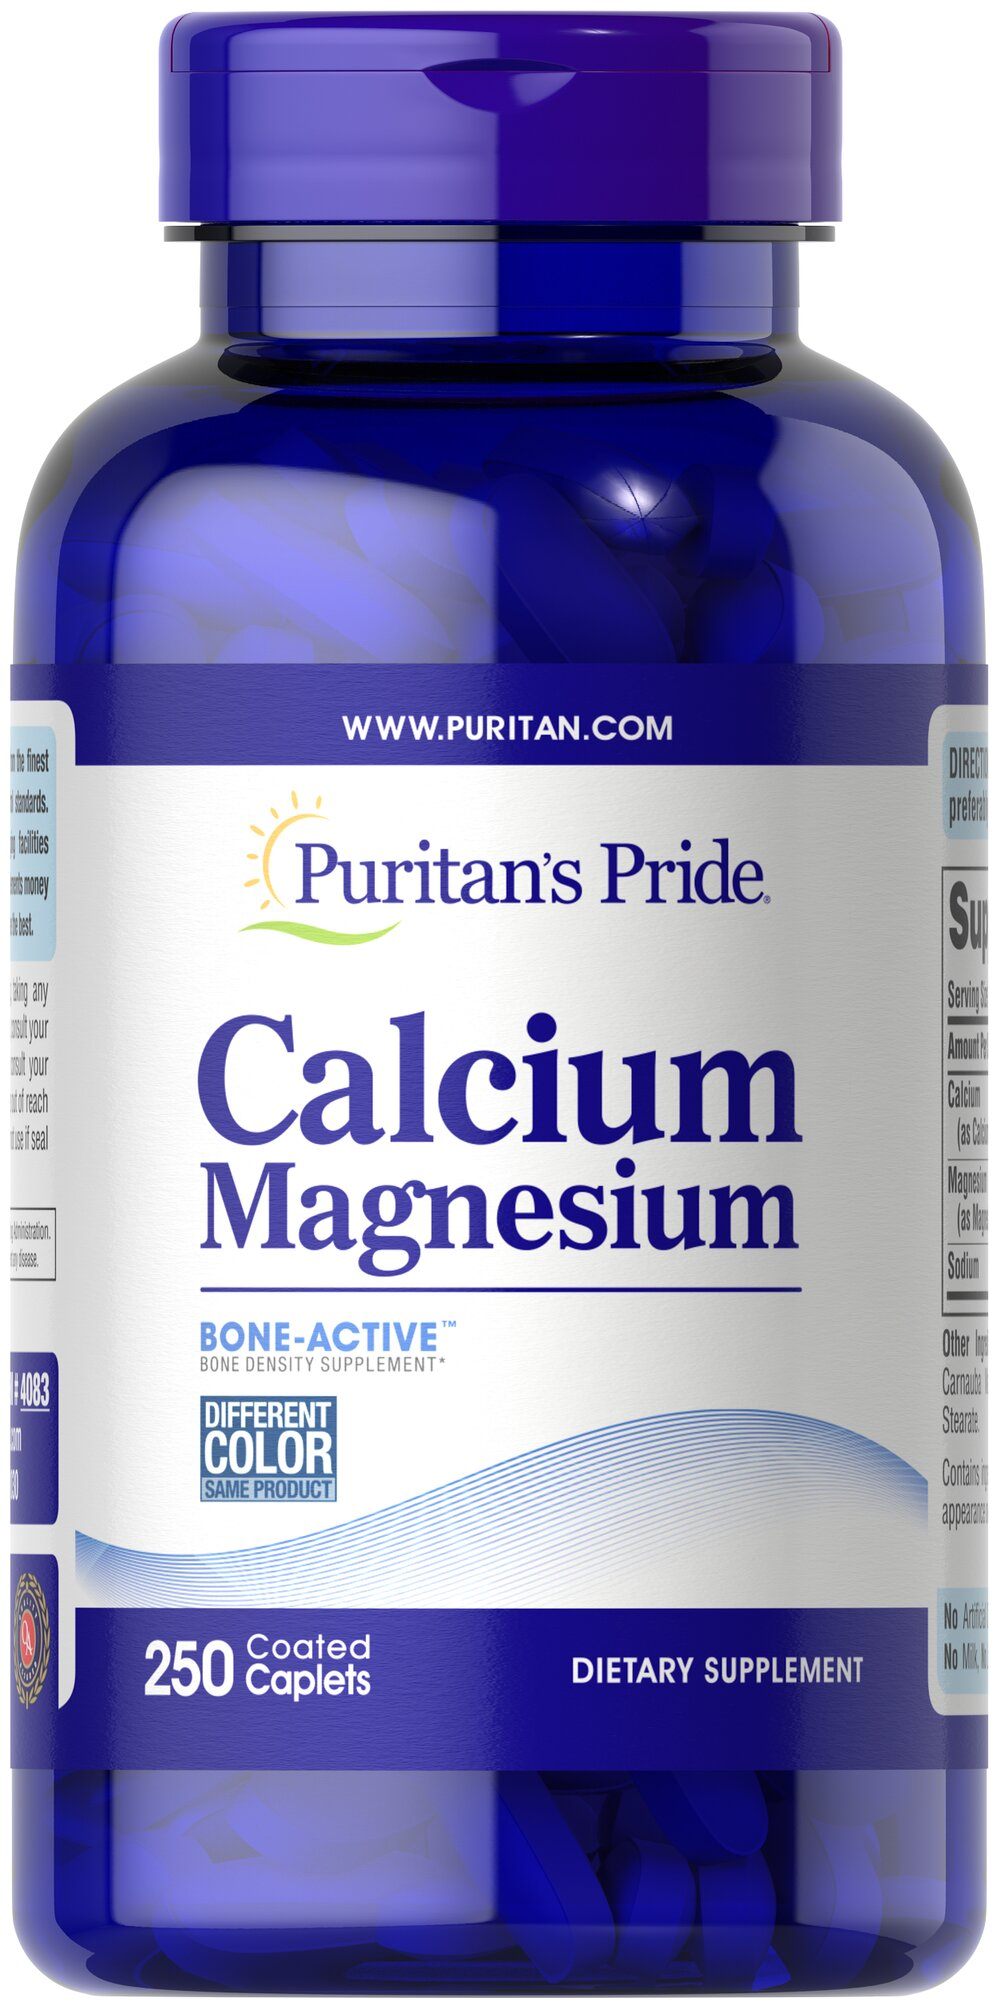 Calcium Magnesium Thumbnail Alternate Bottle View